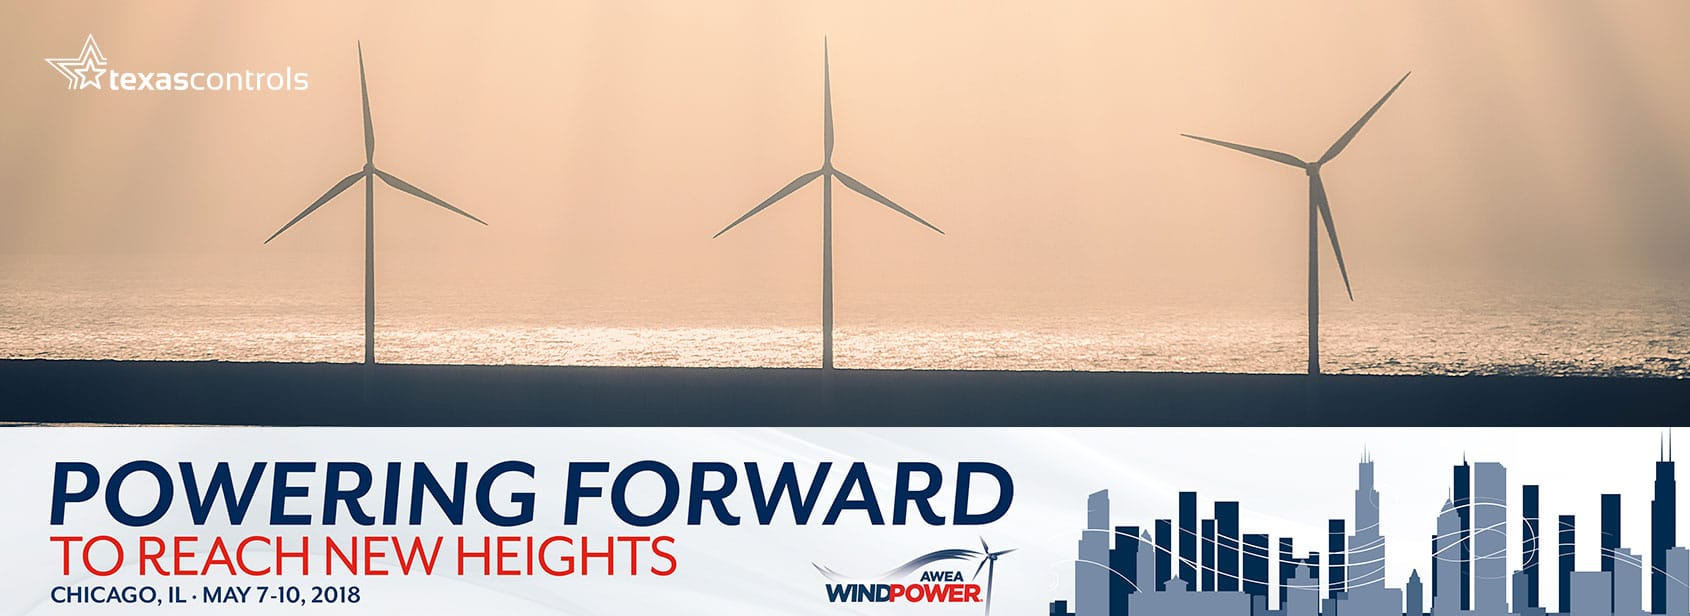 Texas Controls at AWEA WINDPOWER 2018